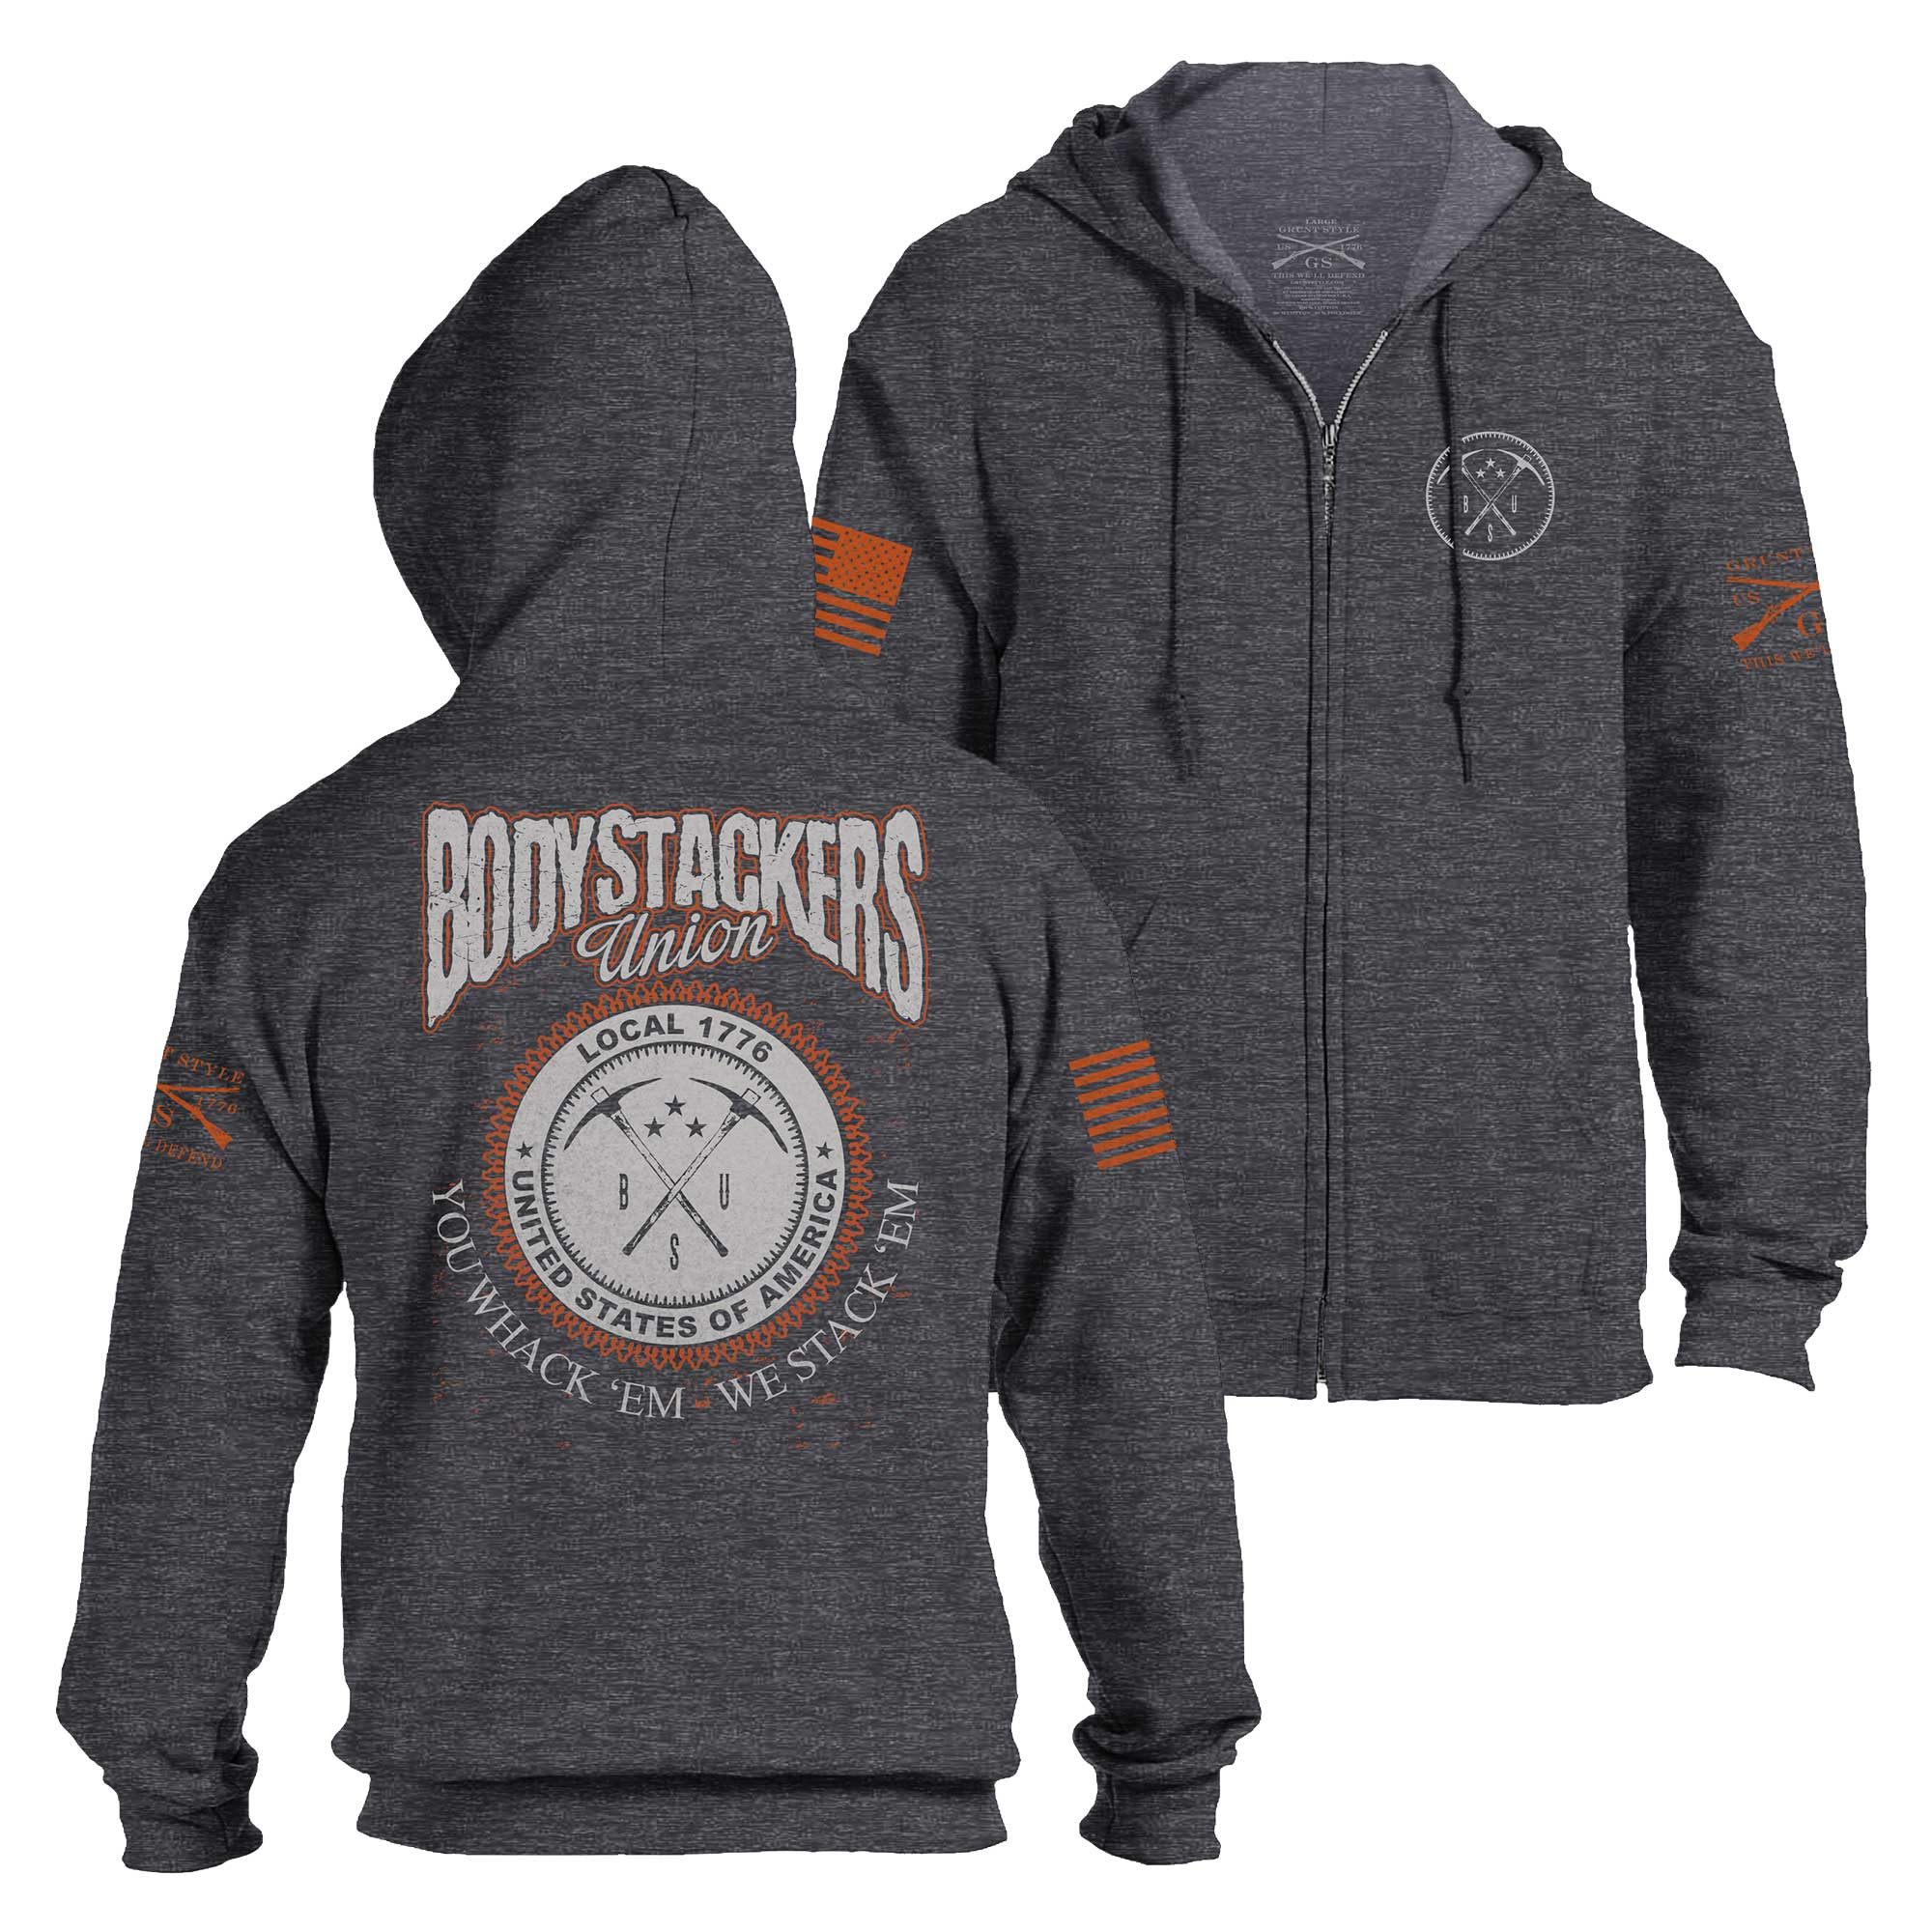 Bodystackers Union Full Zip Hoodie